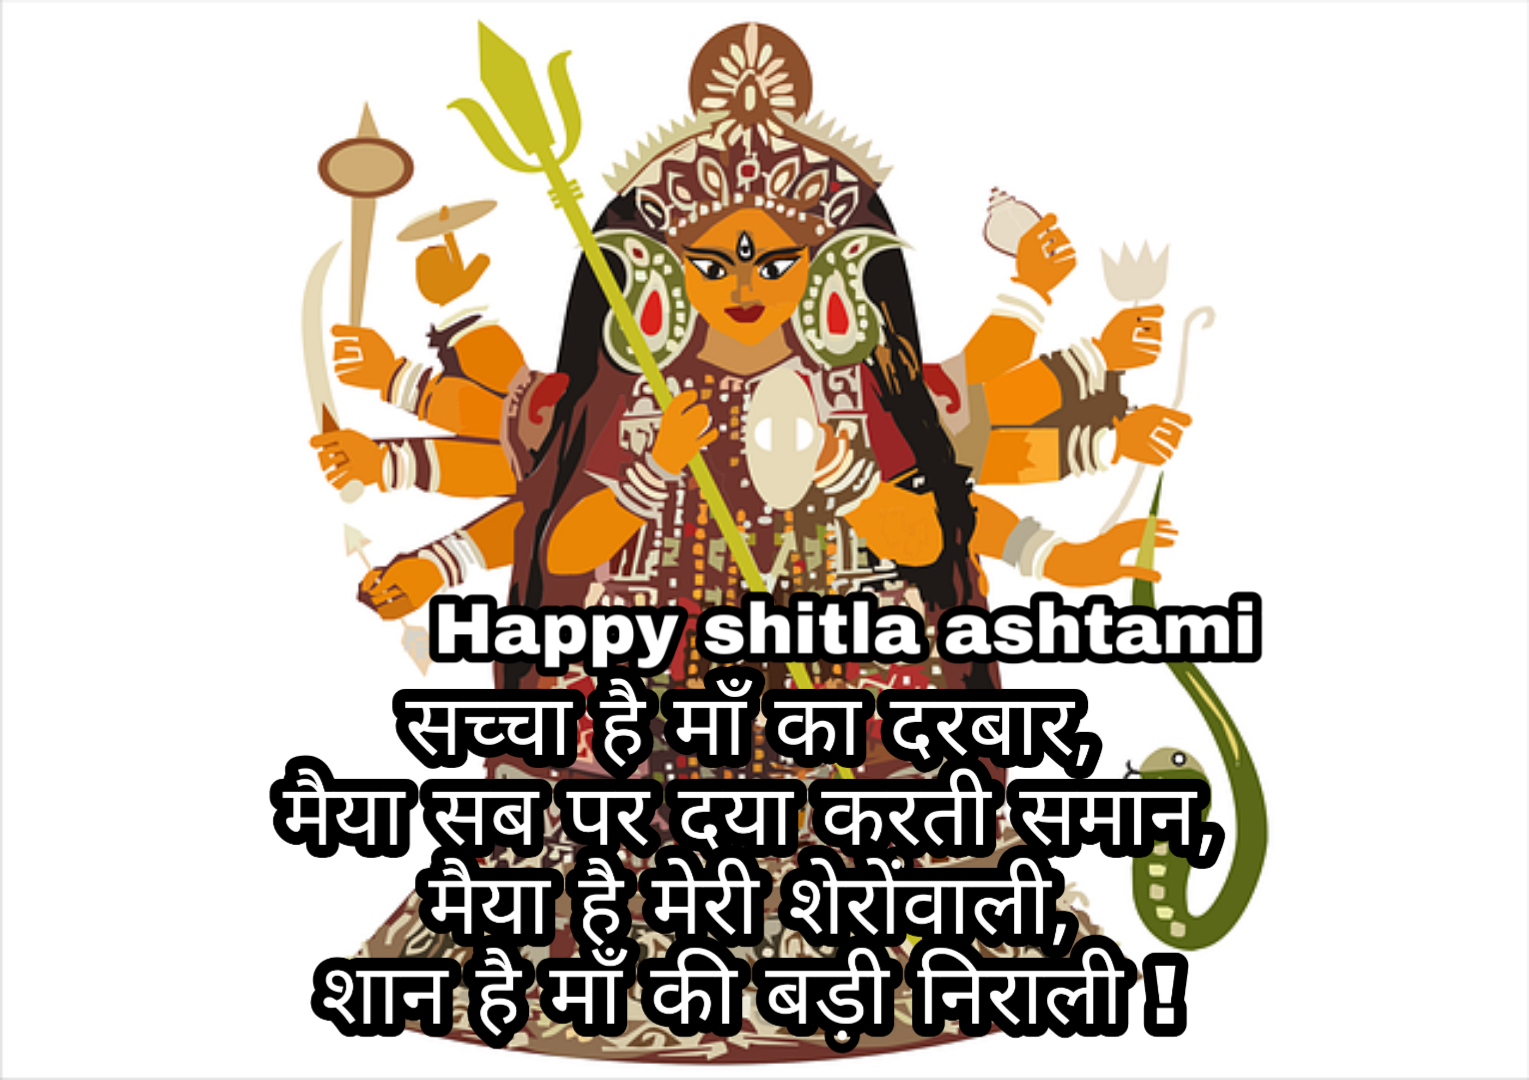 Photo of Sheetala ashtami shayari 2020 in hindi